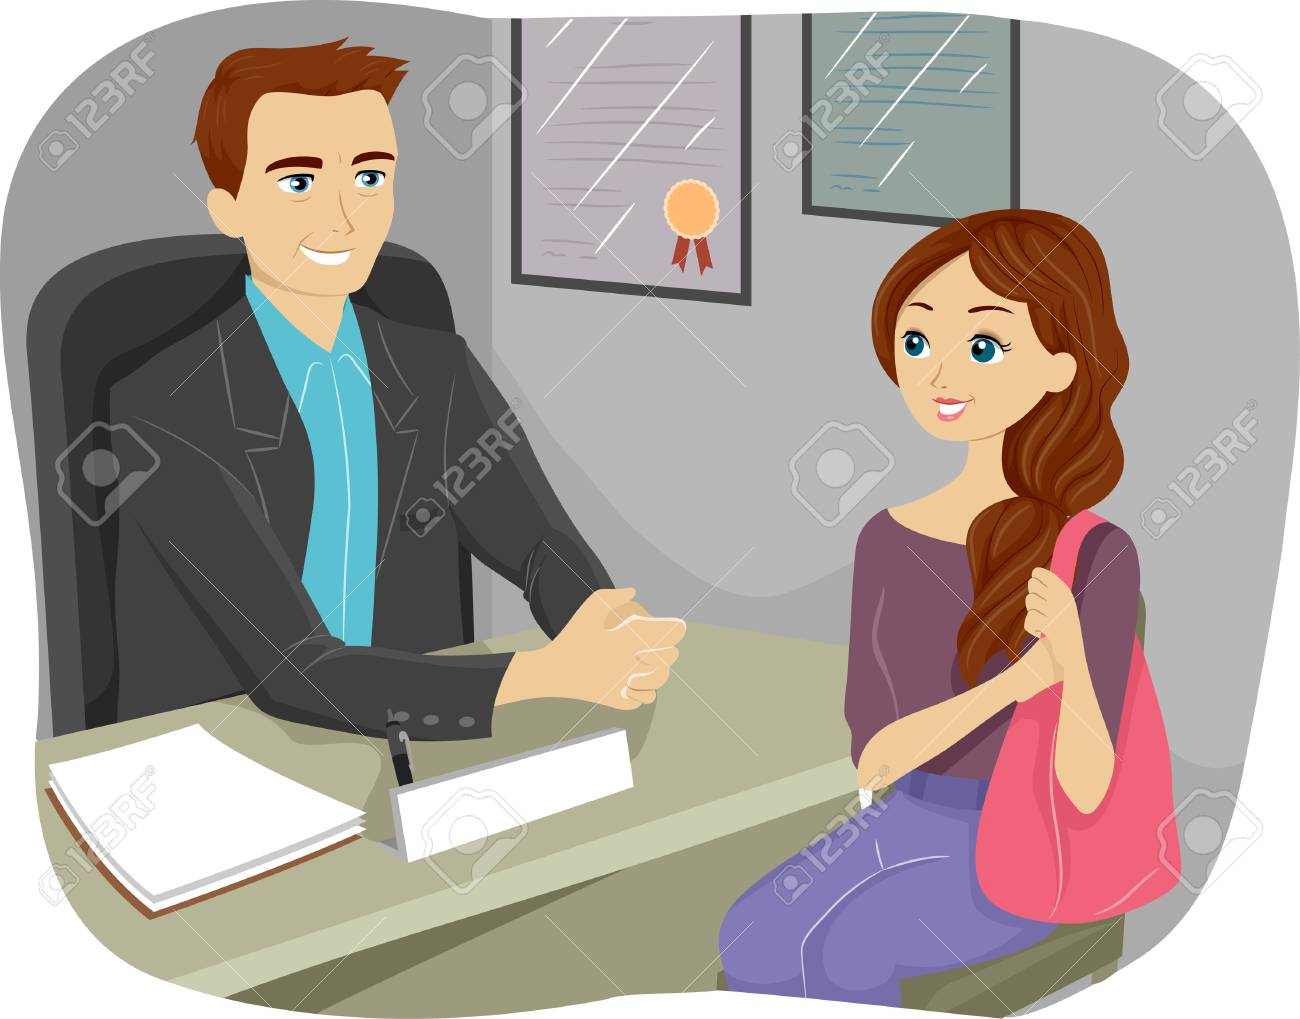 Illustration Of A Teenaged Girl Consulting Their Guidance Counselor